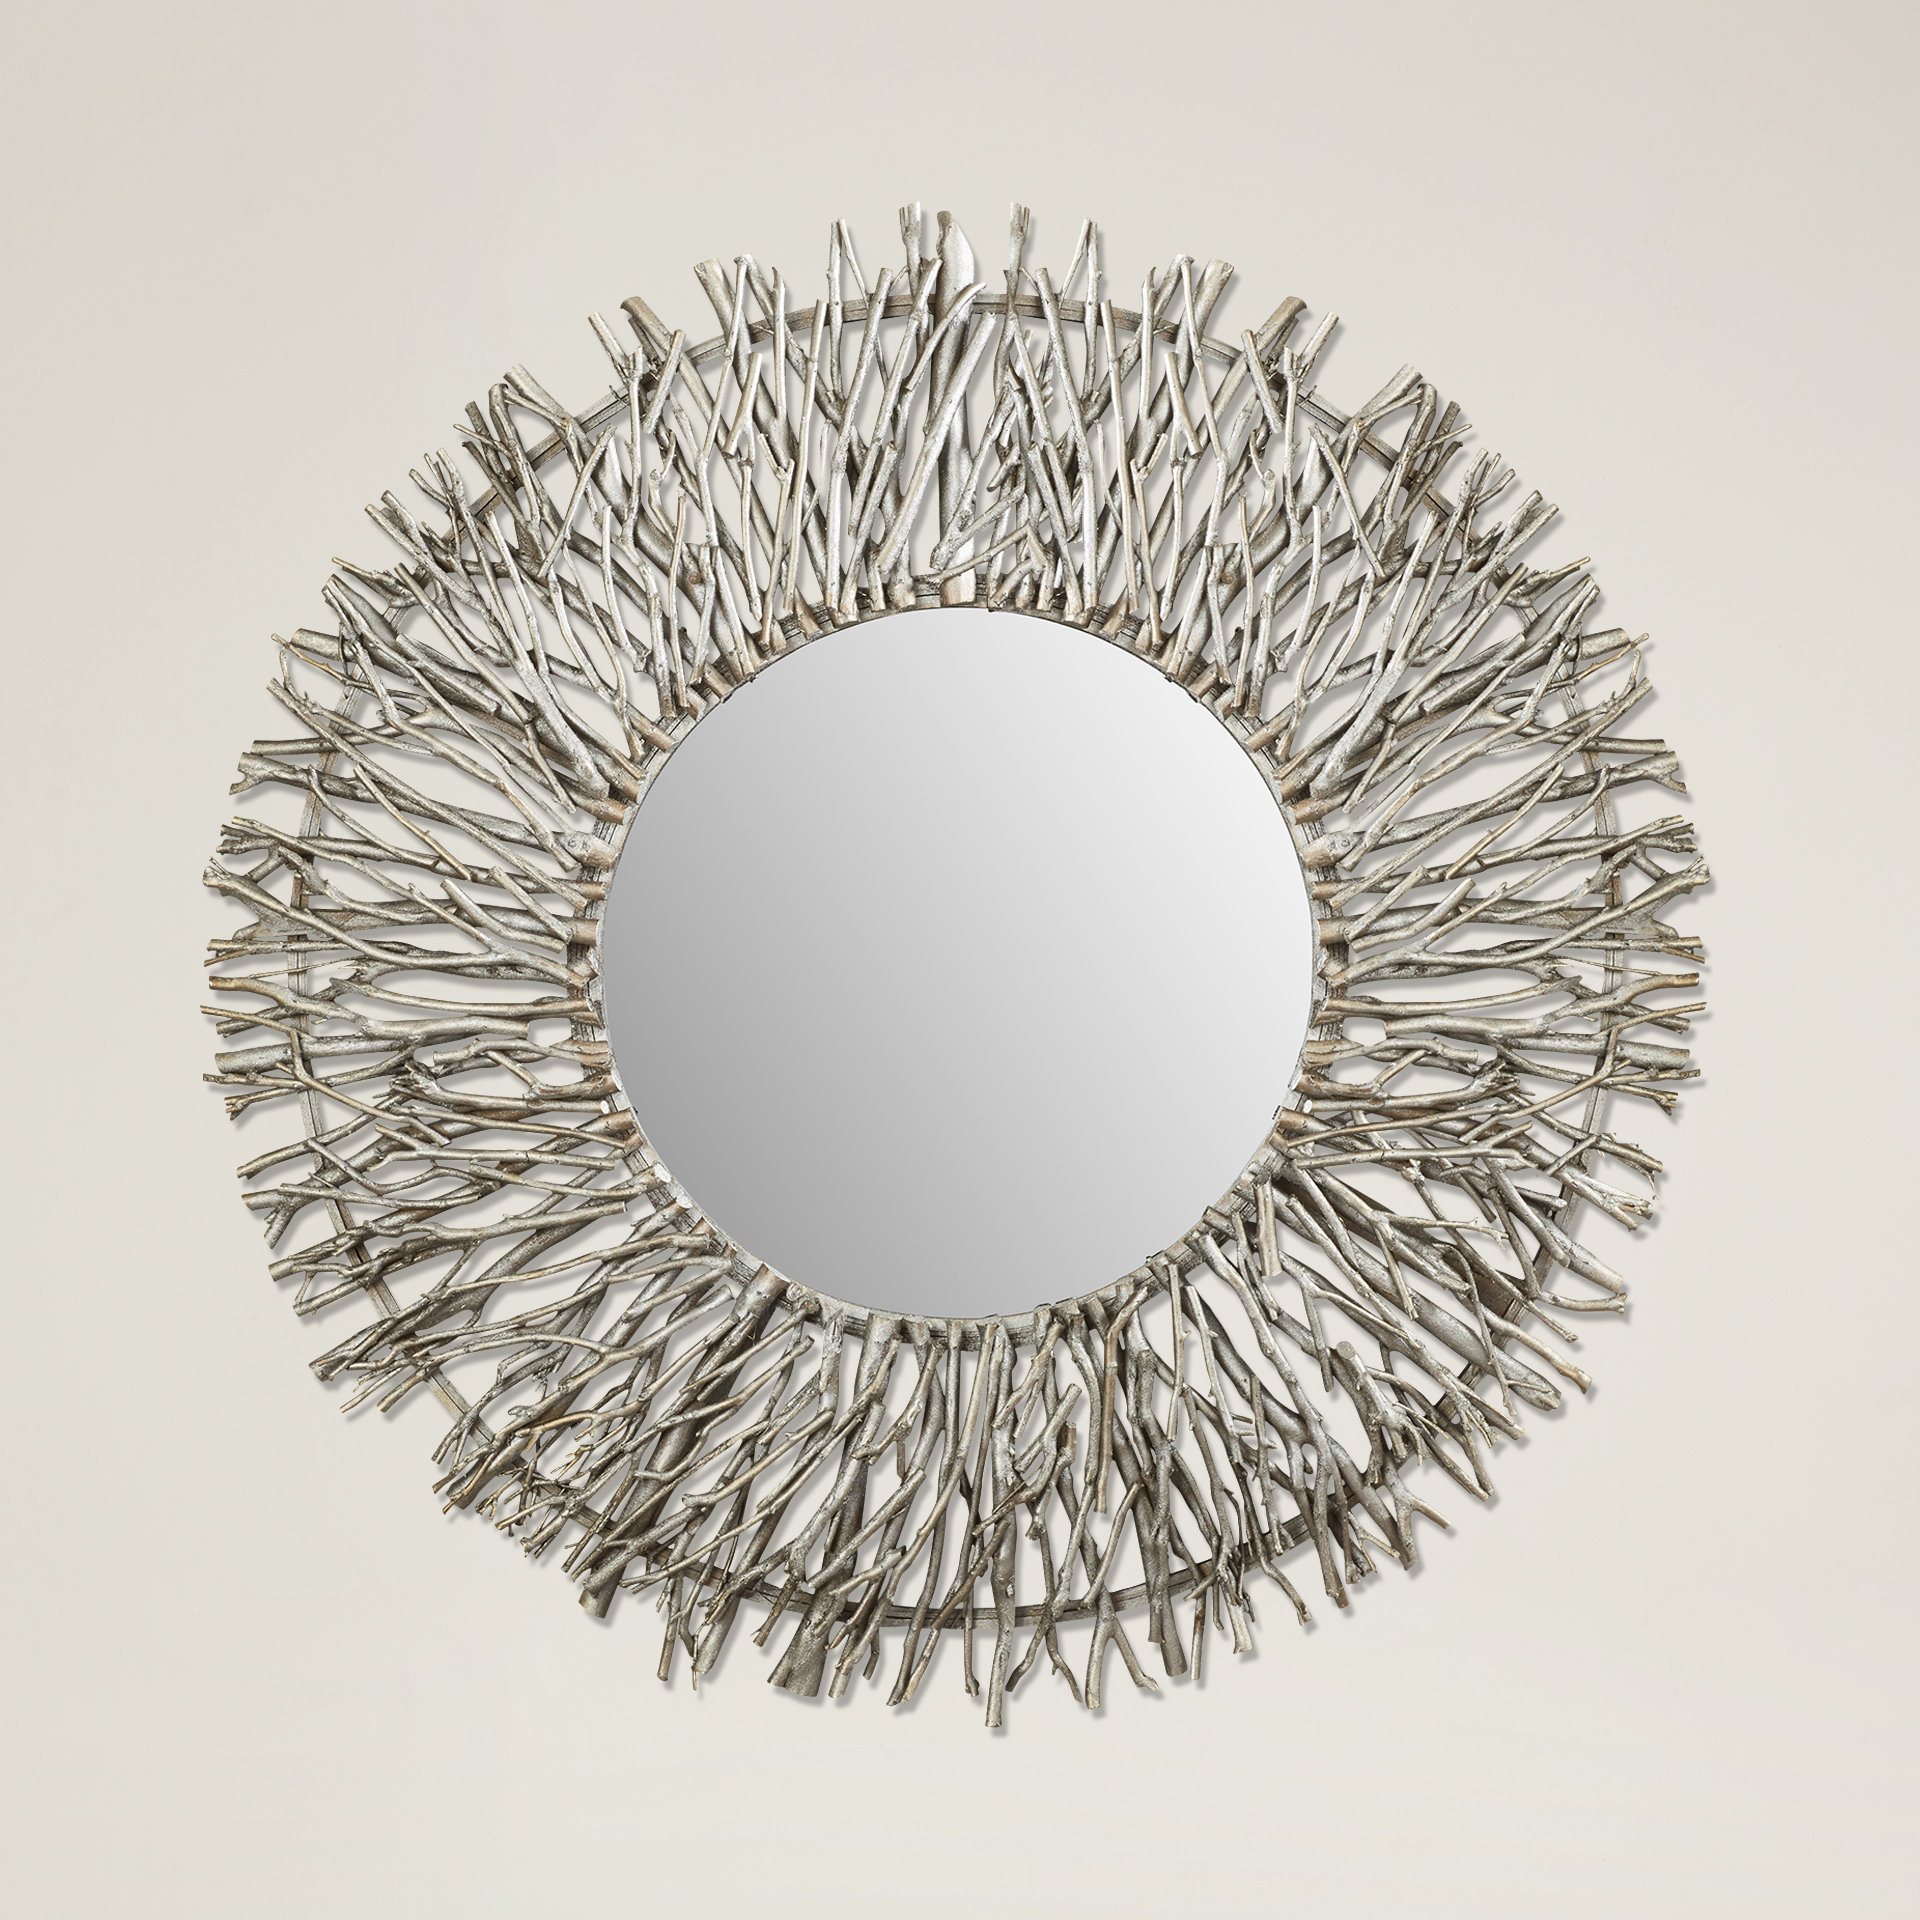 Cromartie Tree Branch Wall Mirror With Karn Vertical Round Resin Wall Mirrors (Image 3 of 20)